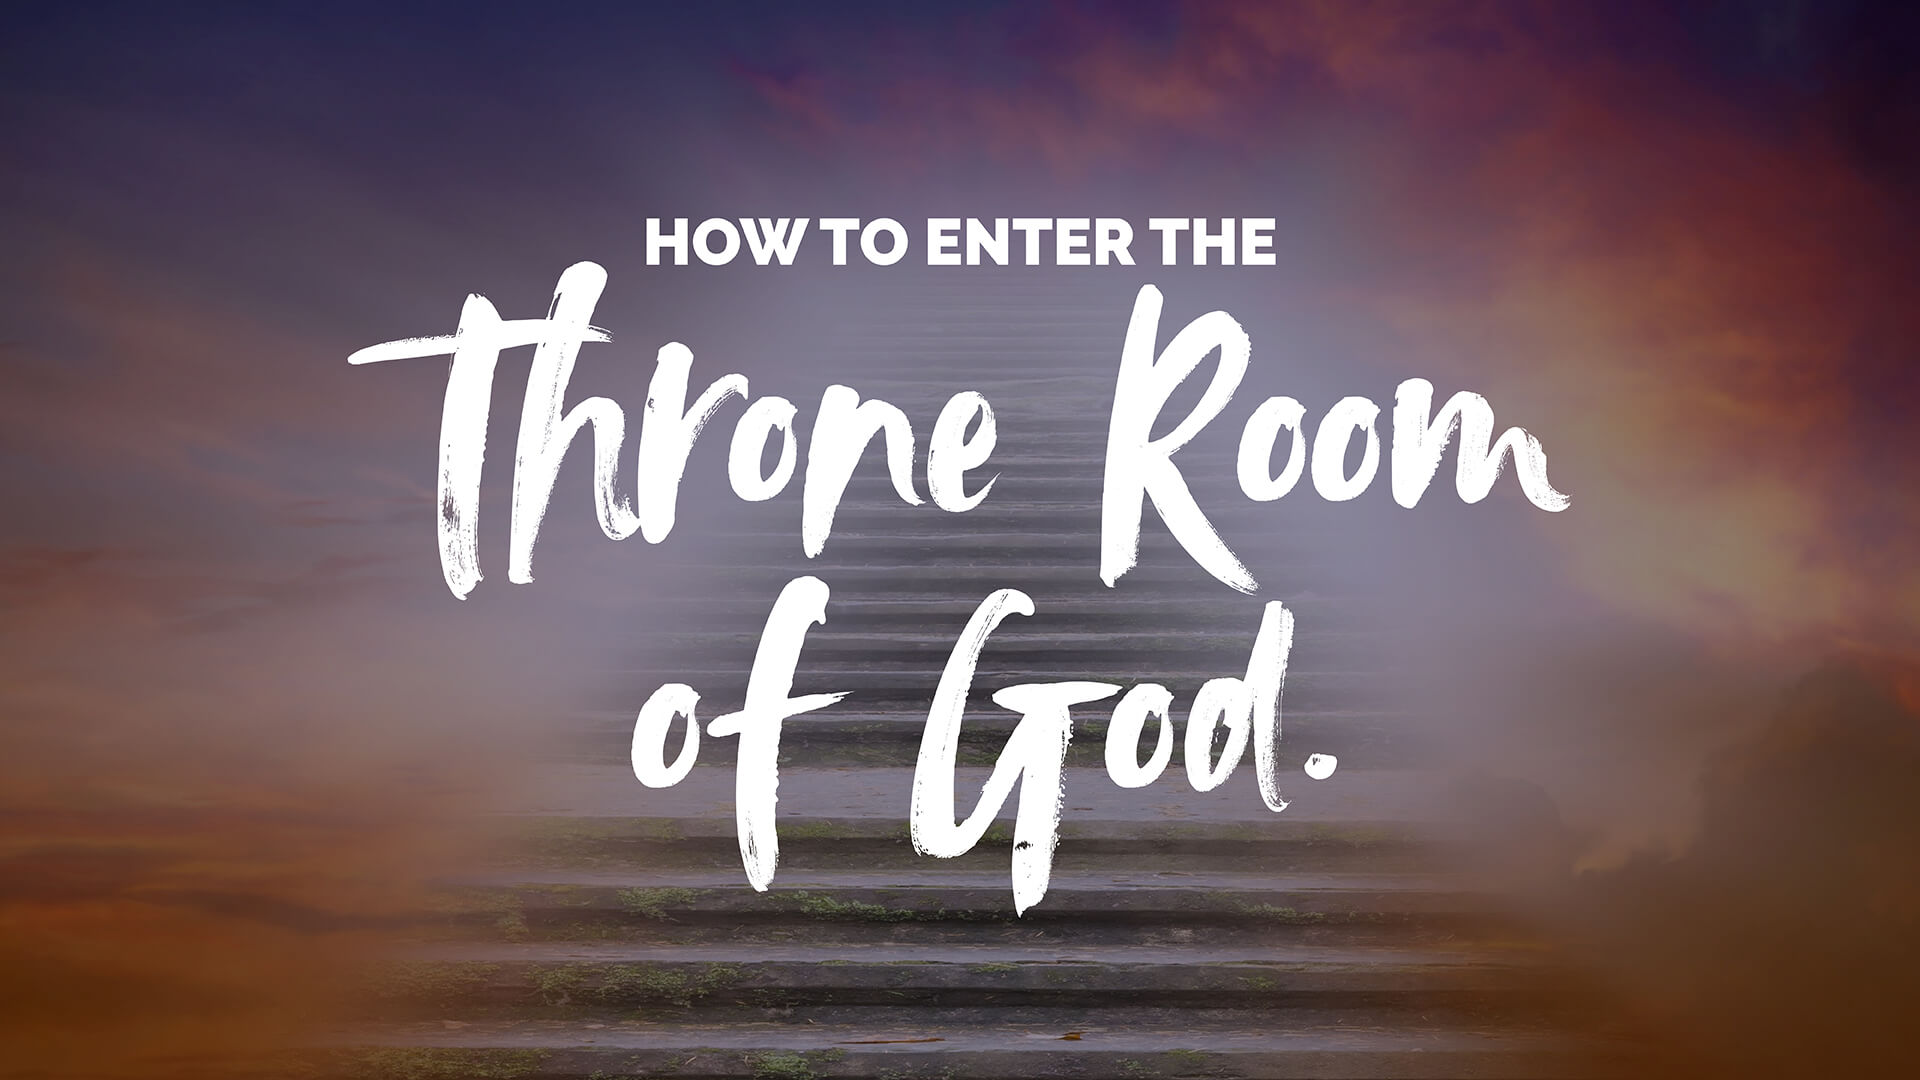 How to Enter the Throne Room of God